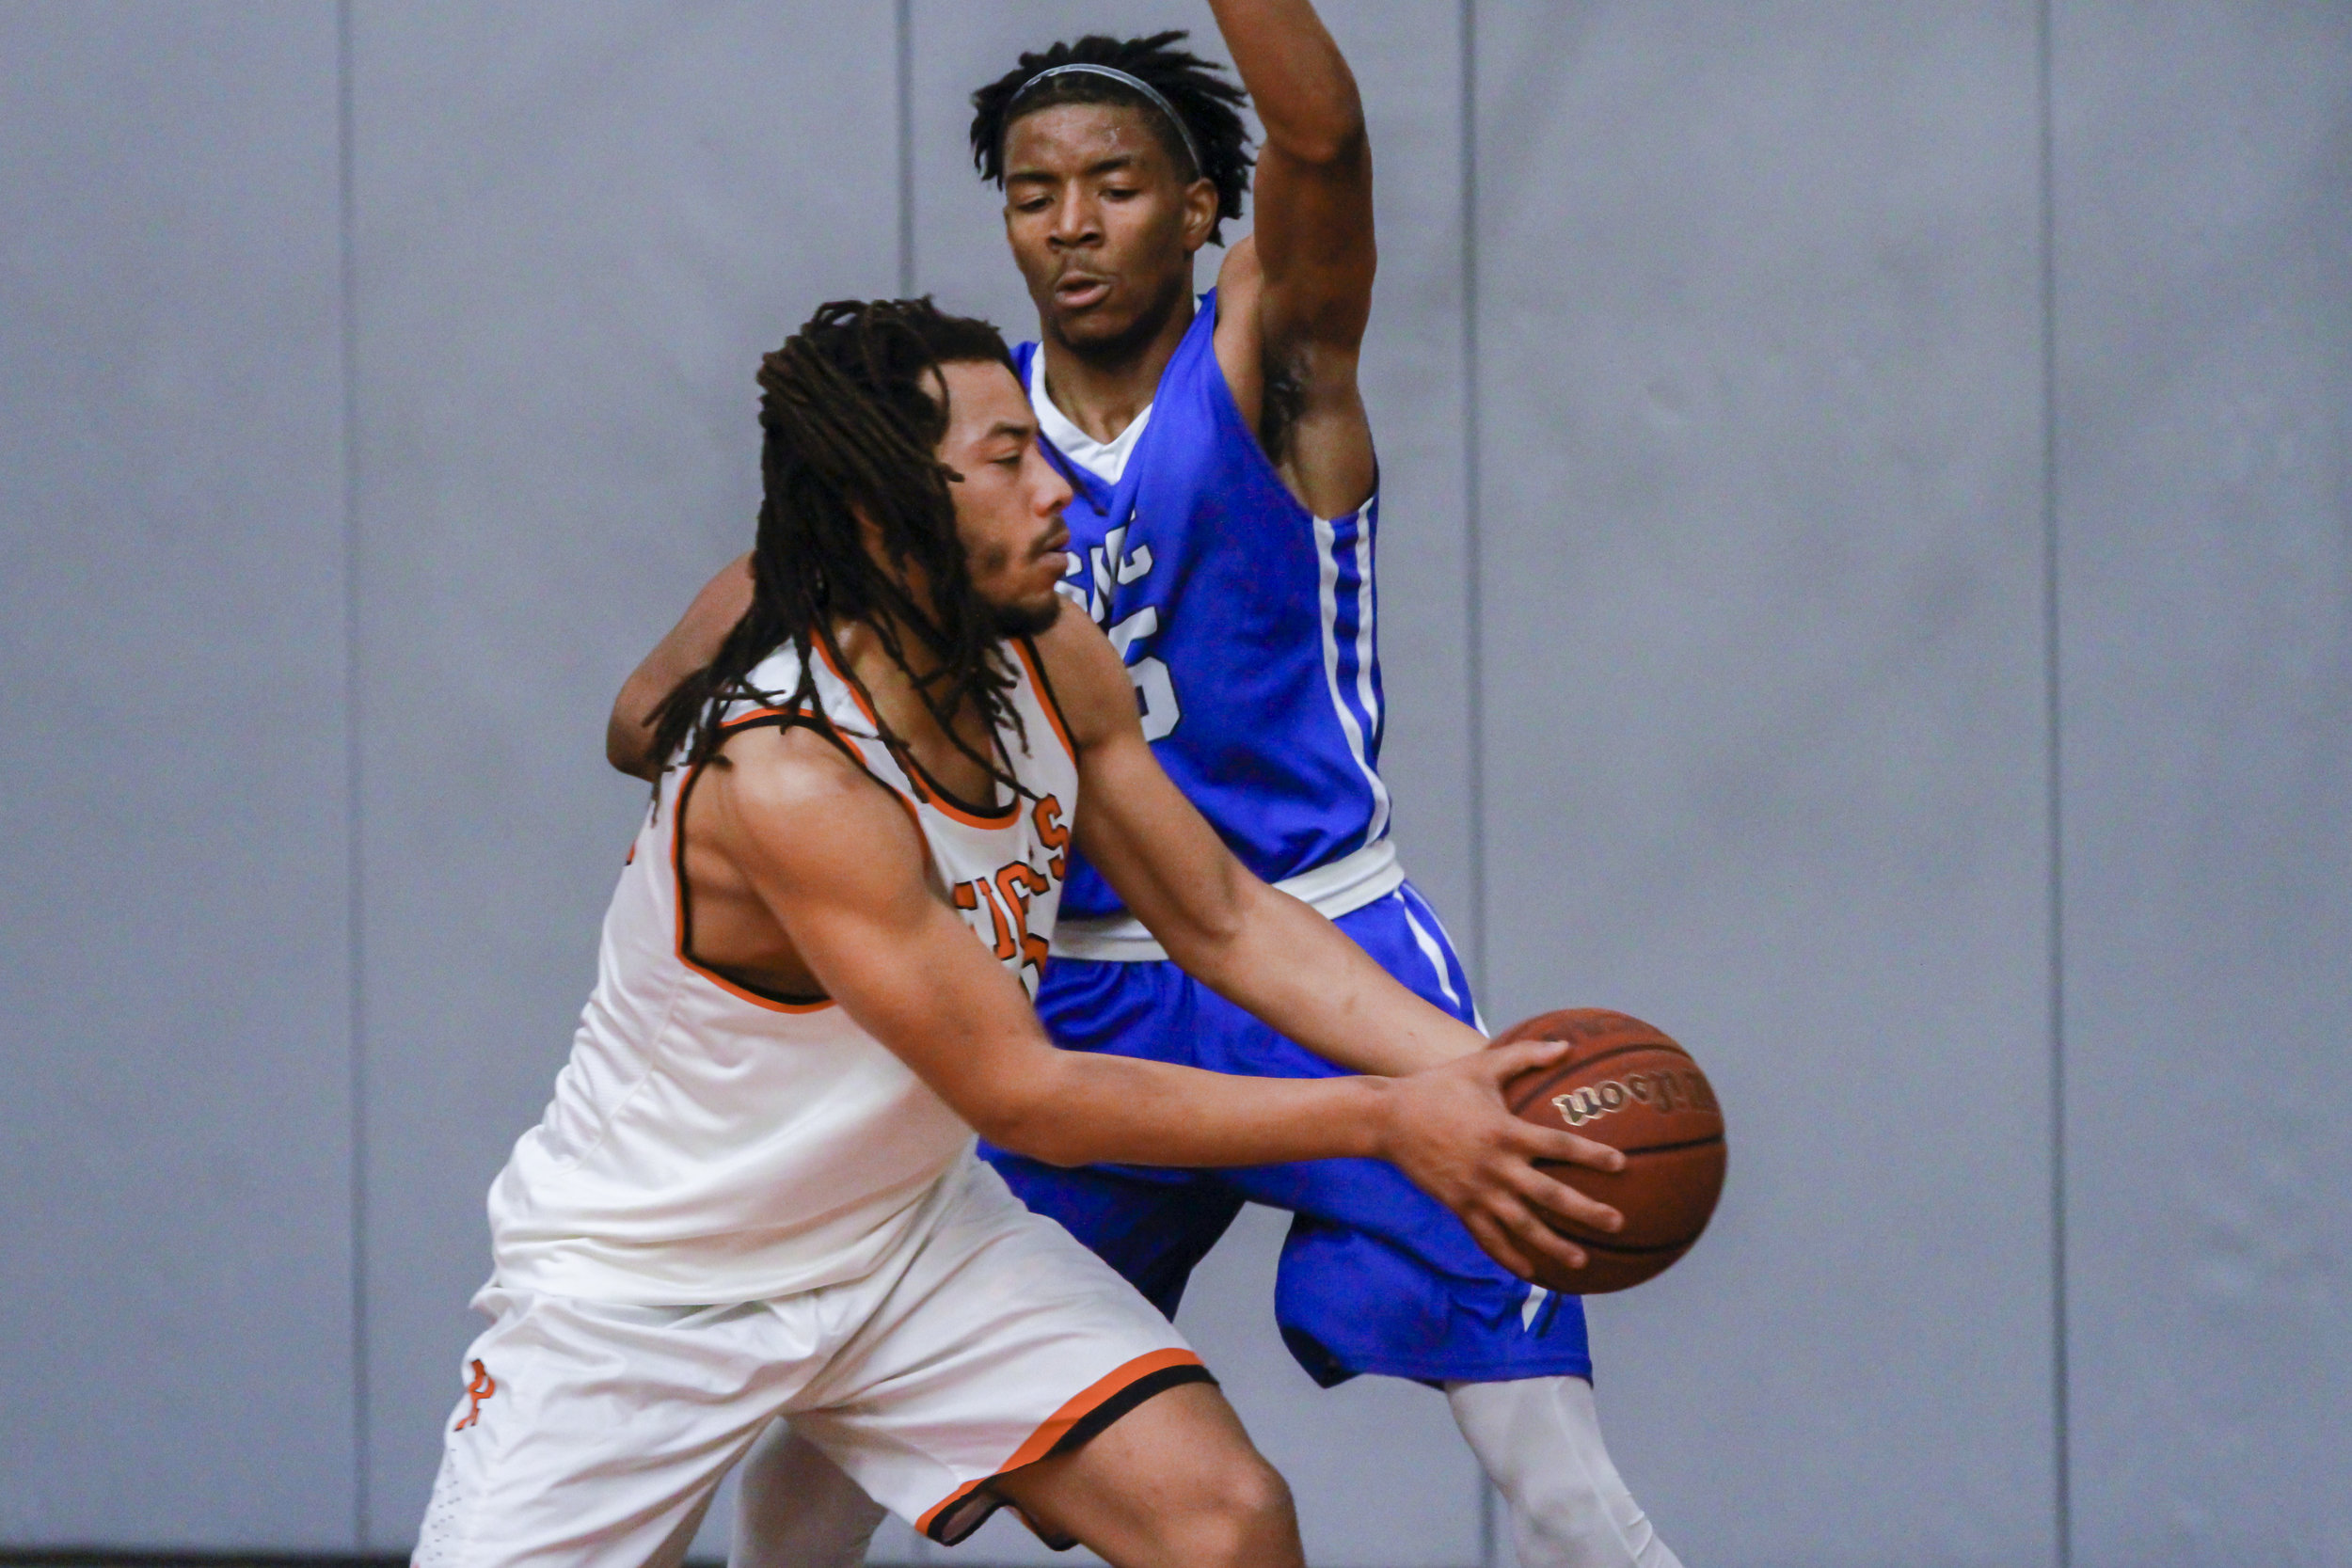 Kyle Young of the Santa Monica Corsairs and Frank McQuay of the Riverside City College Tigers at Riverside City College on Saturday March 9, 2019. The Corsairs defeated the Riverside Tigers 66-54, to claim the regional final. Photo by Tanya Barcessat